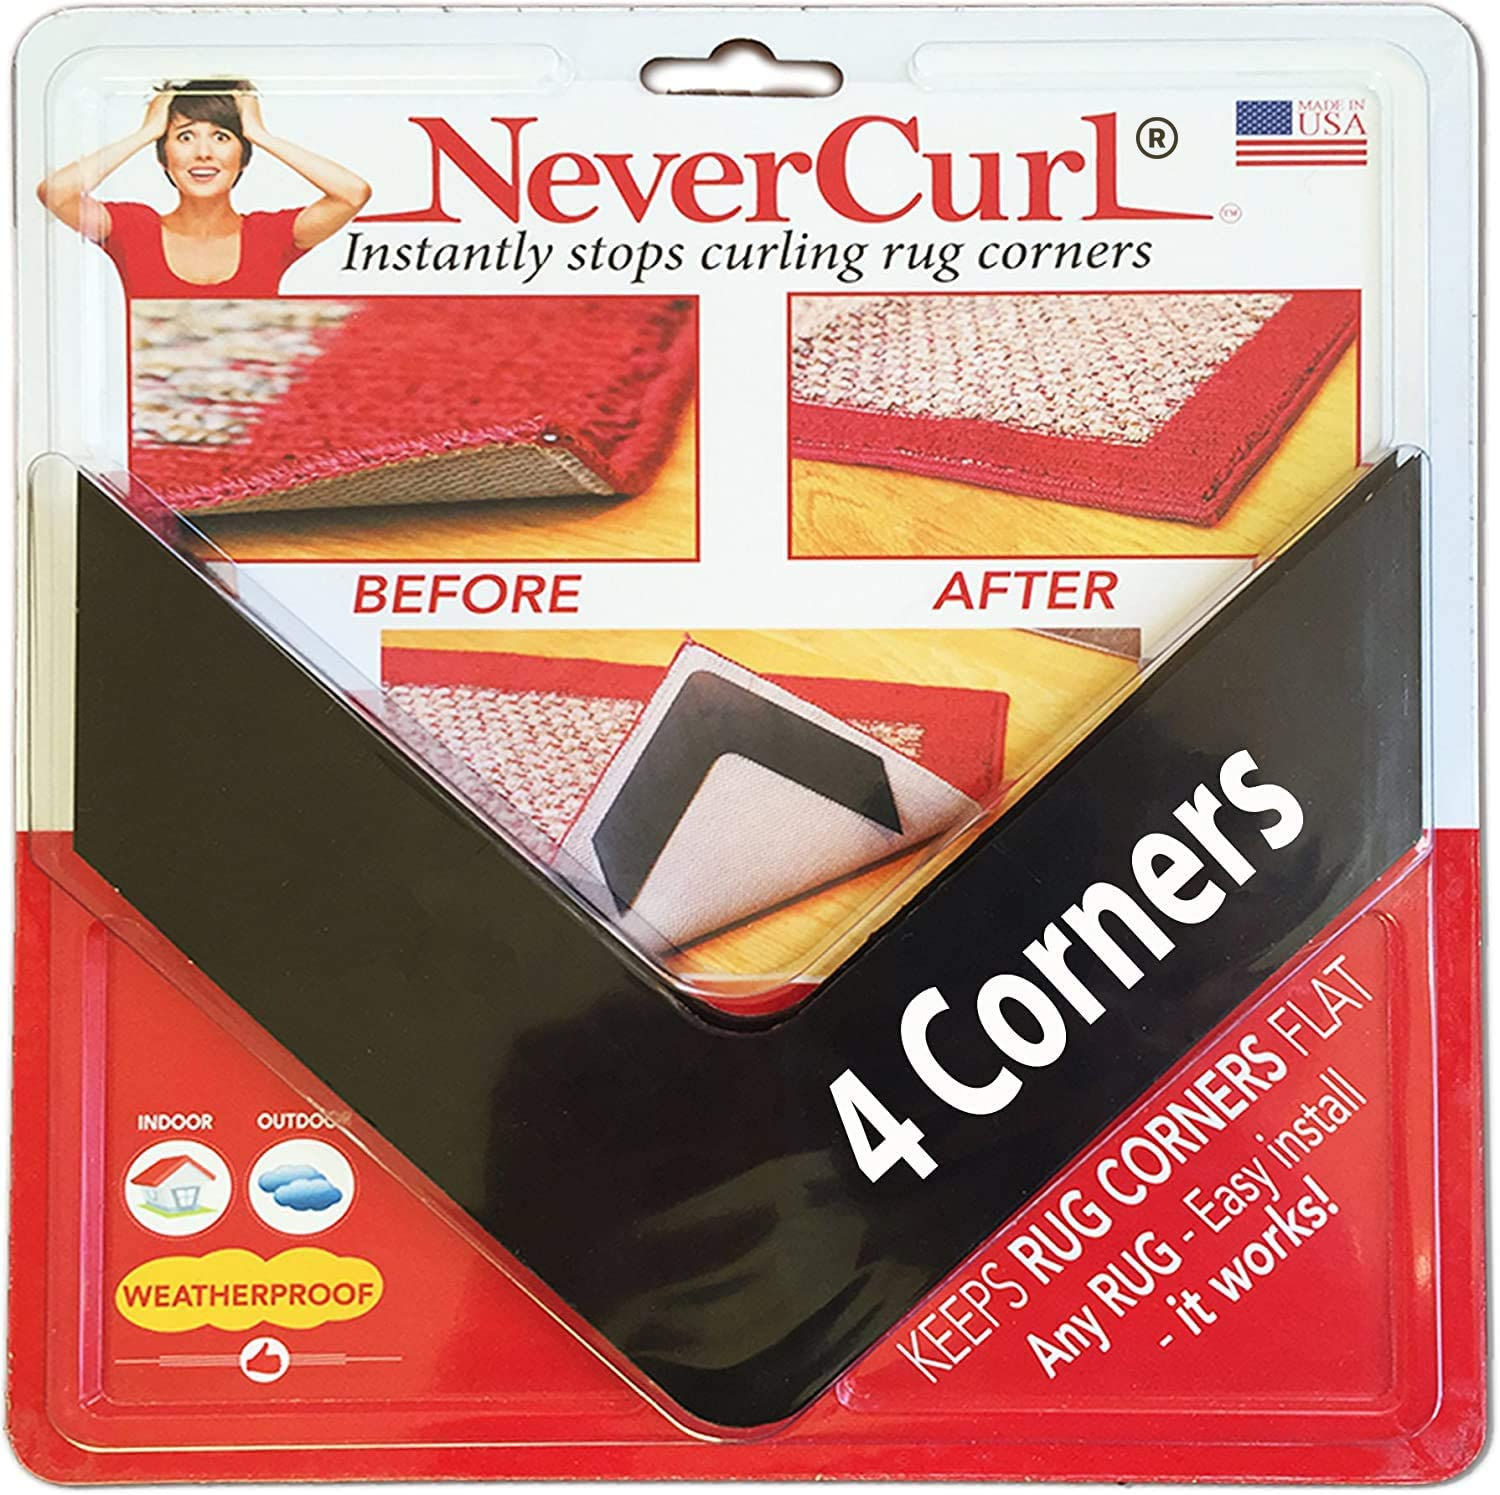 NeverCurl Best V Shape Design Gripper to Instantly Stops Rug Corner Curling. Safe for Wood Floors. for Indoor & Outdoor Rugs - Not an Anti-Slip pad - Made USA - Patented: Furniture & Decor